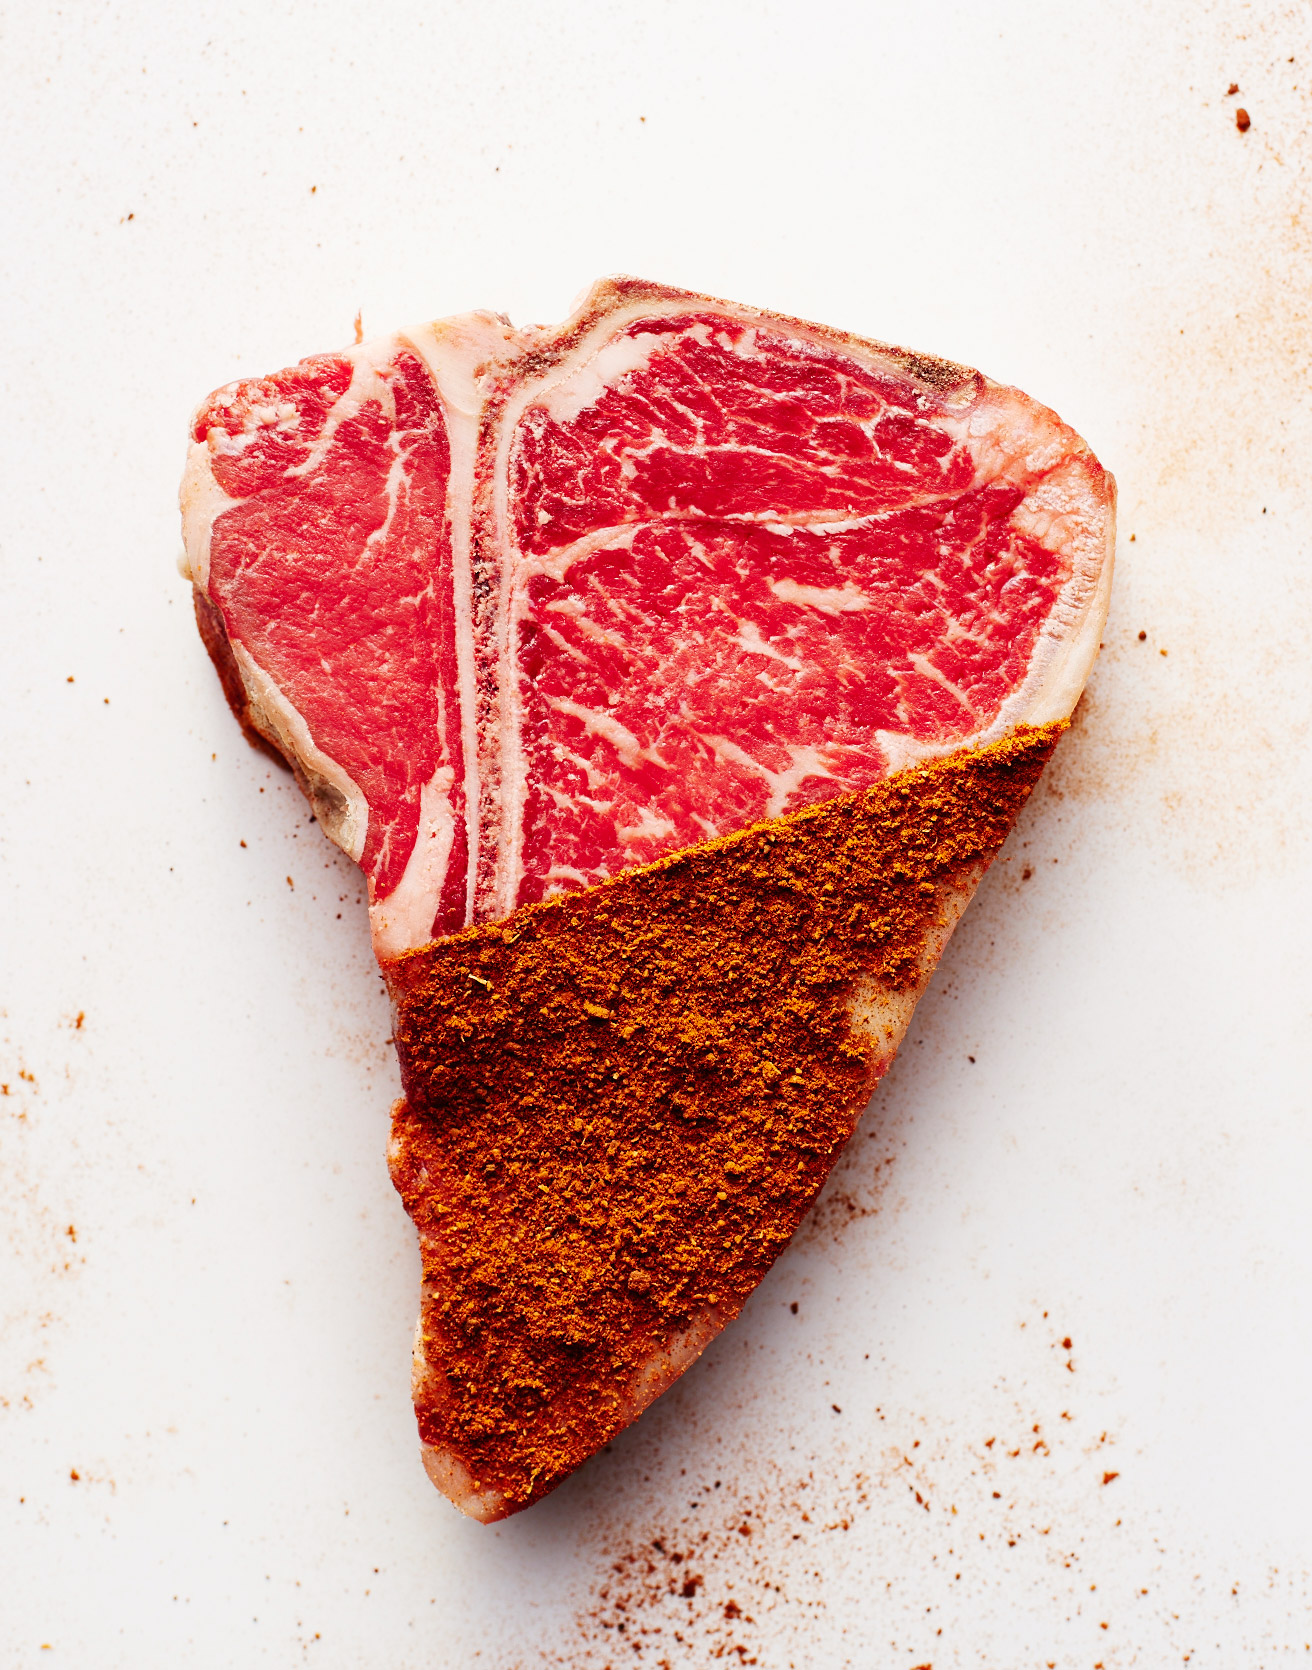 T Bone steak on white with dry rub  by  Ted Cavanaugh